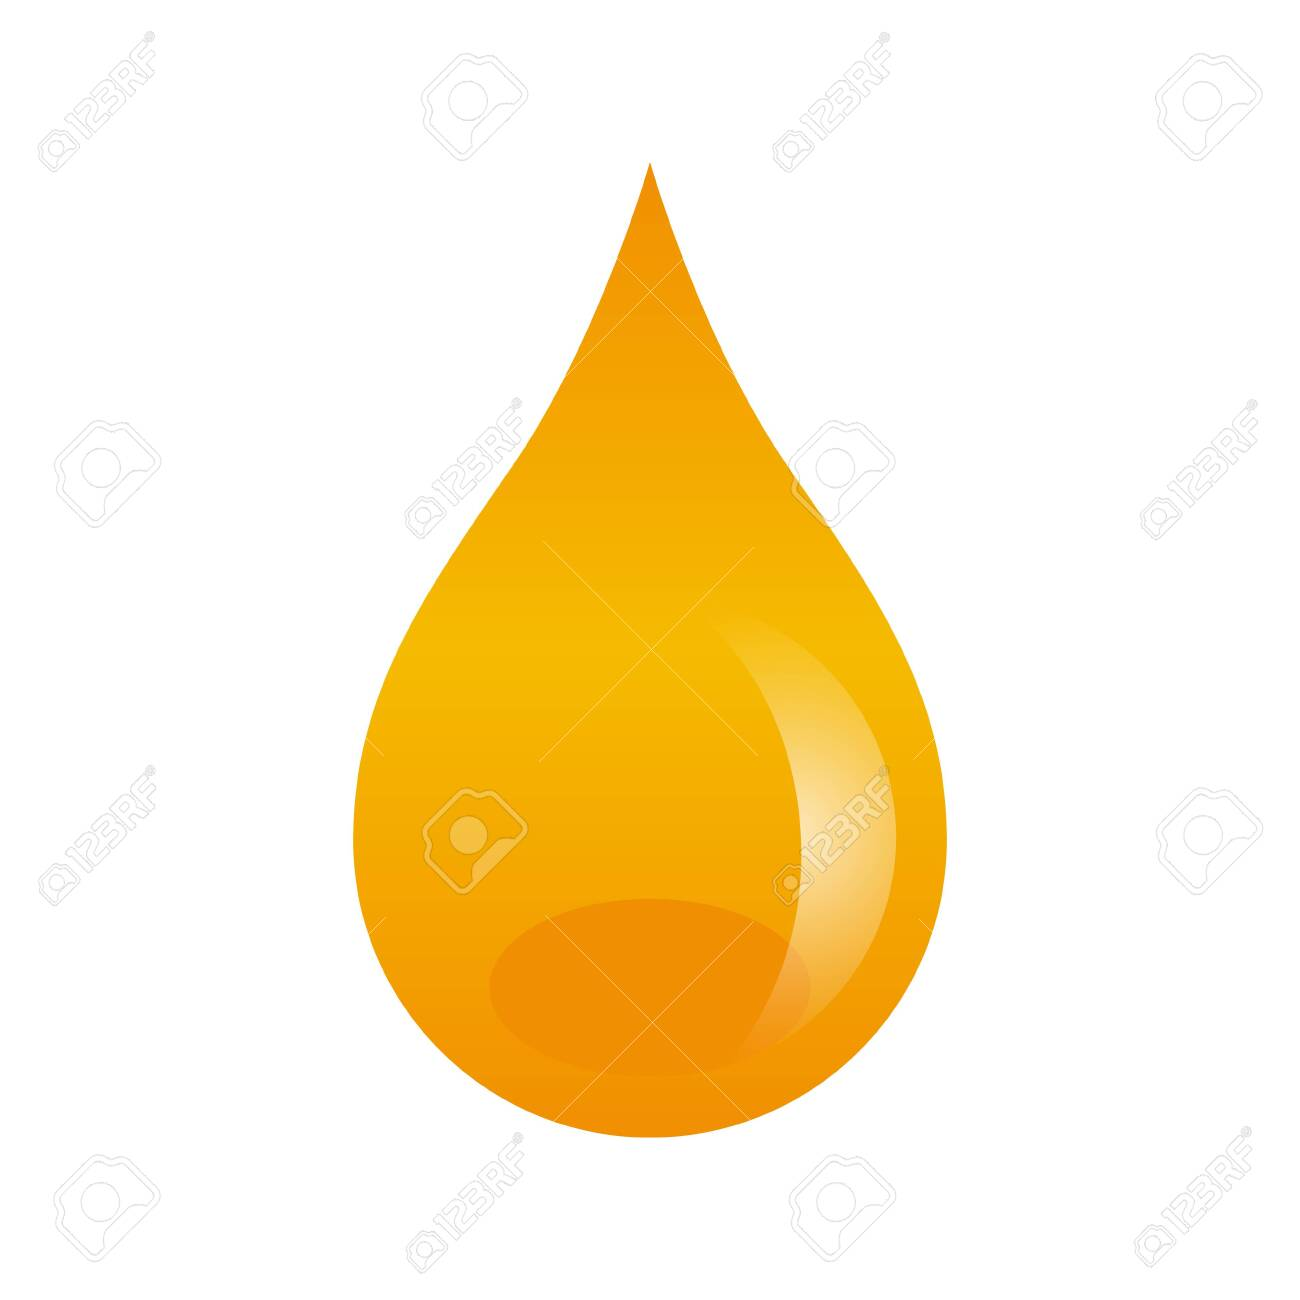 Oil drop isolated on white background. Vector illustration with honey yellow liquid drop. Can be used as a web icon, design etc. - 142650983